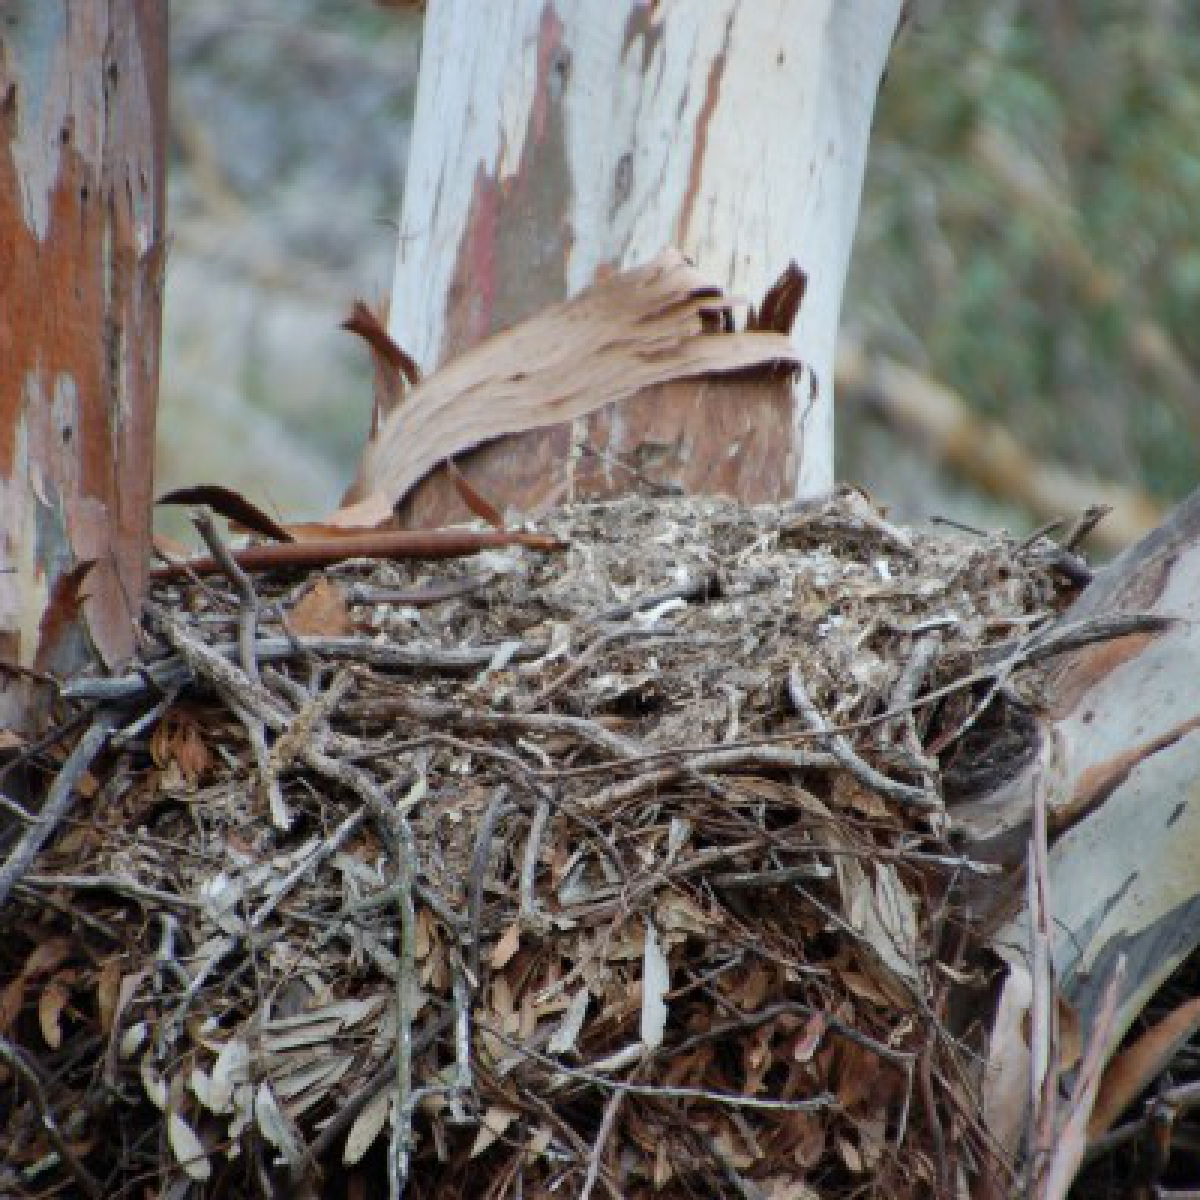 322 Wedge-tailed Eagle - last year's nest